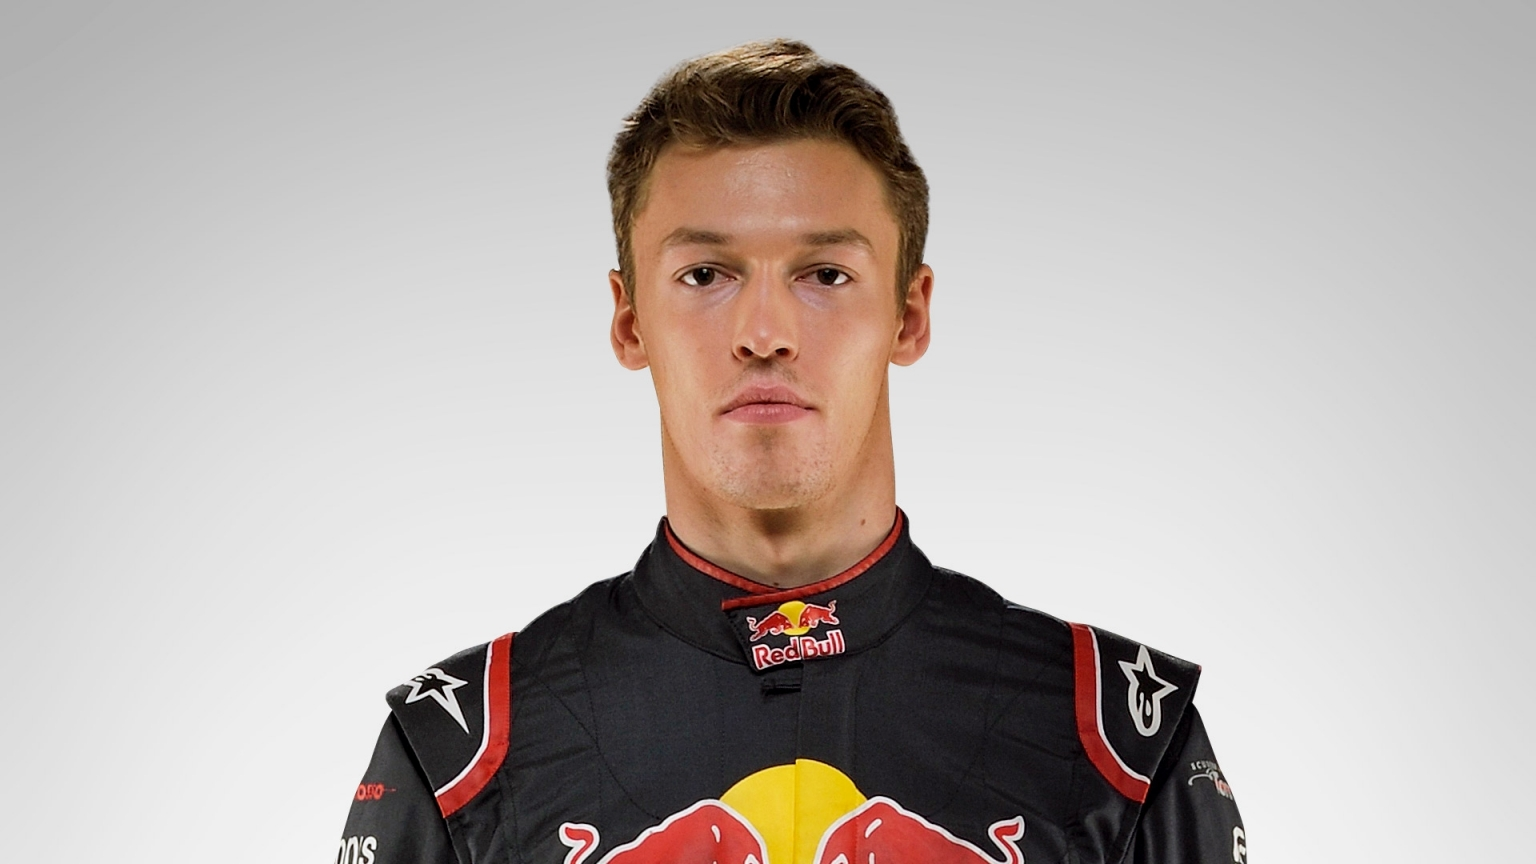 Rate the Grid - Daniil Kvyat.jpg